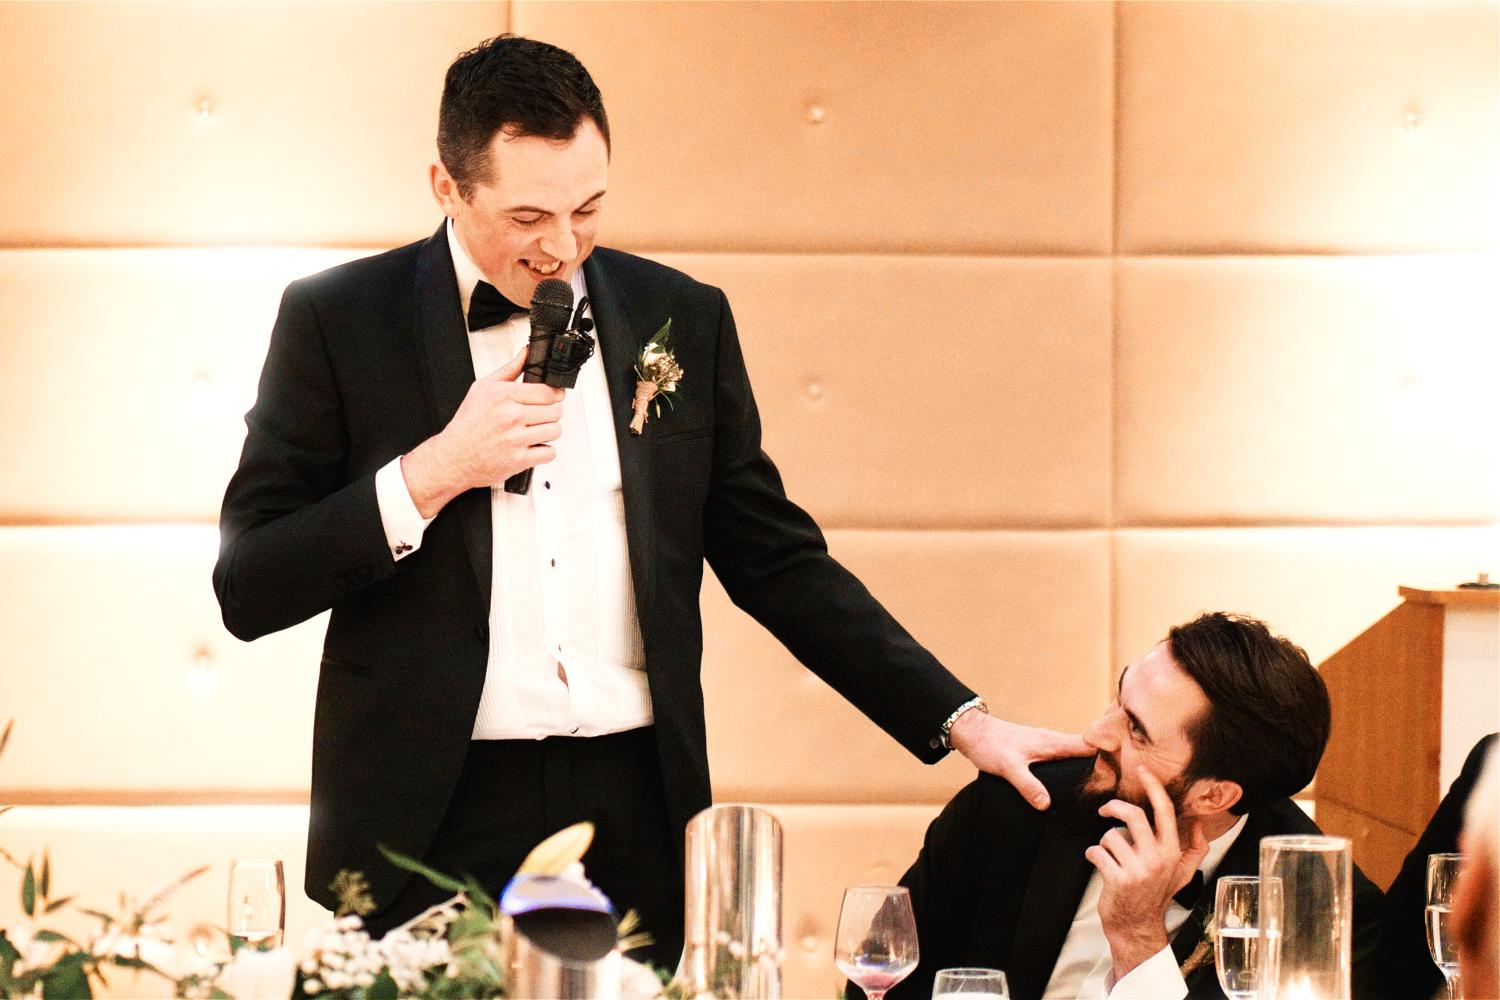 Groom affectionately touches his brother's shoulder during the speeches